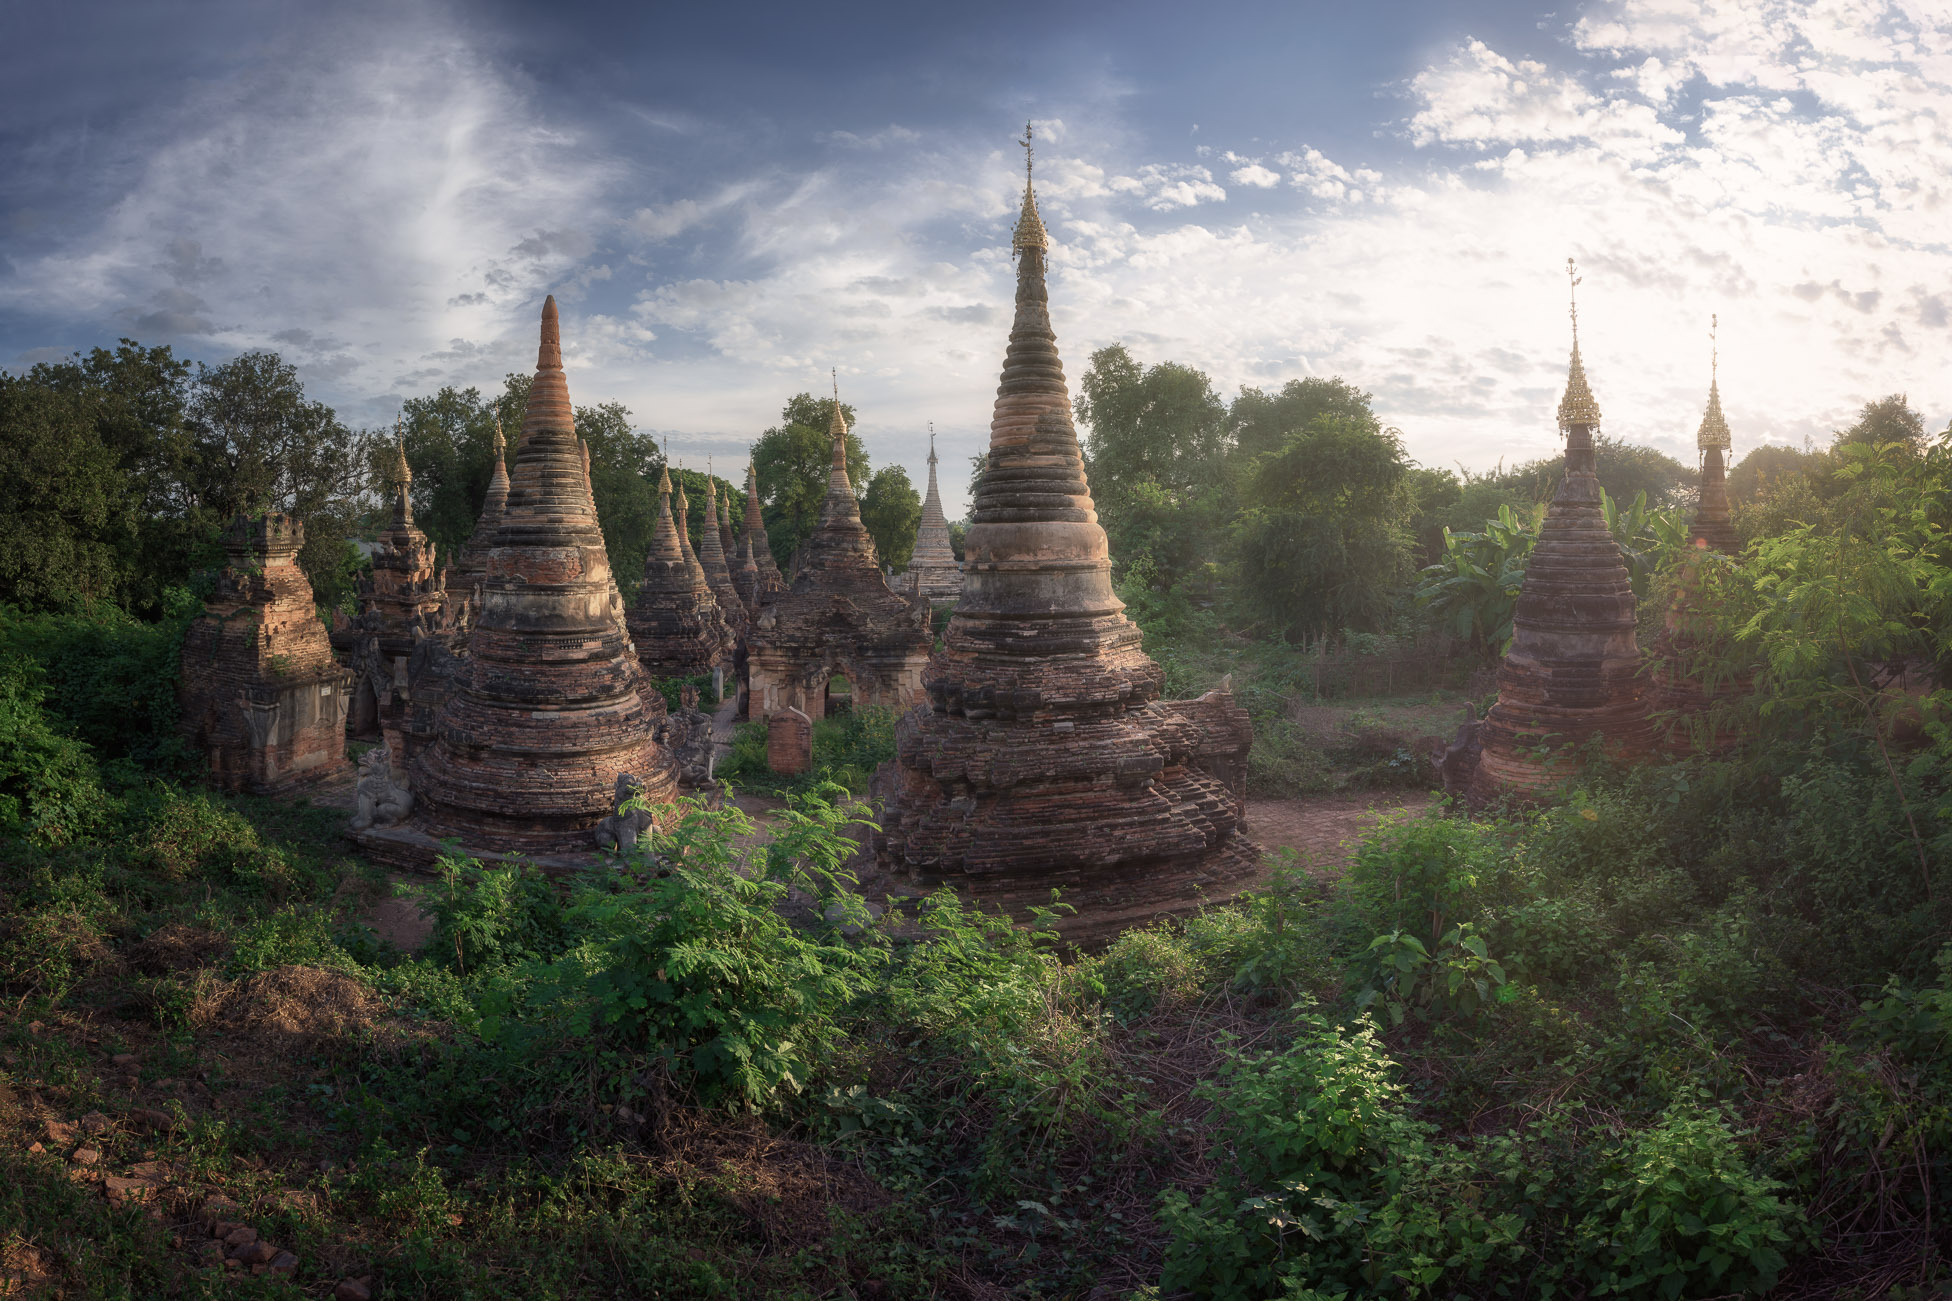 Ancient Pagoda Complex in the Evening, Inwa, Myanmar